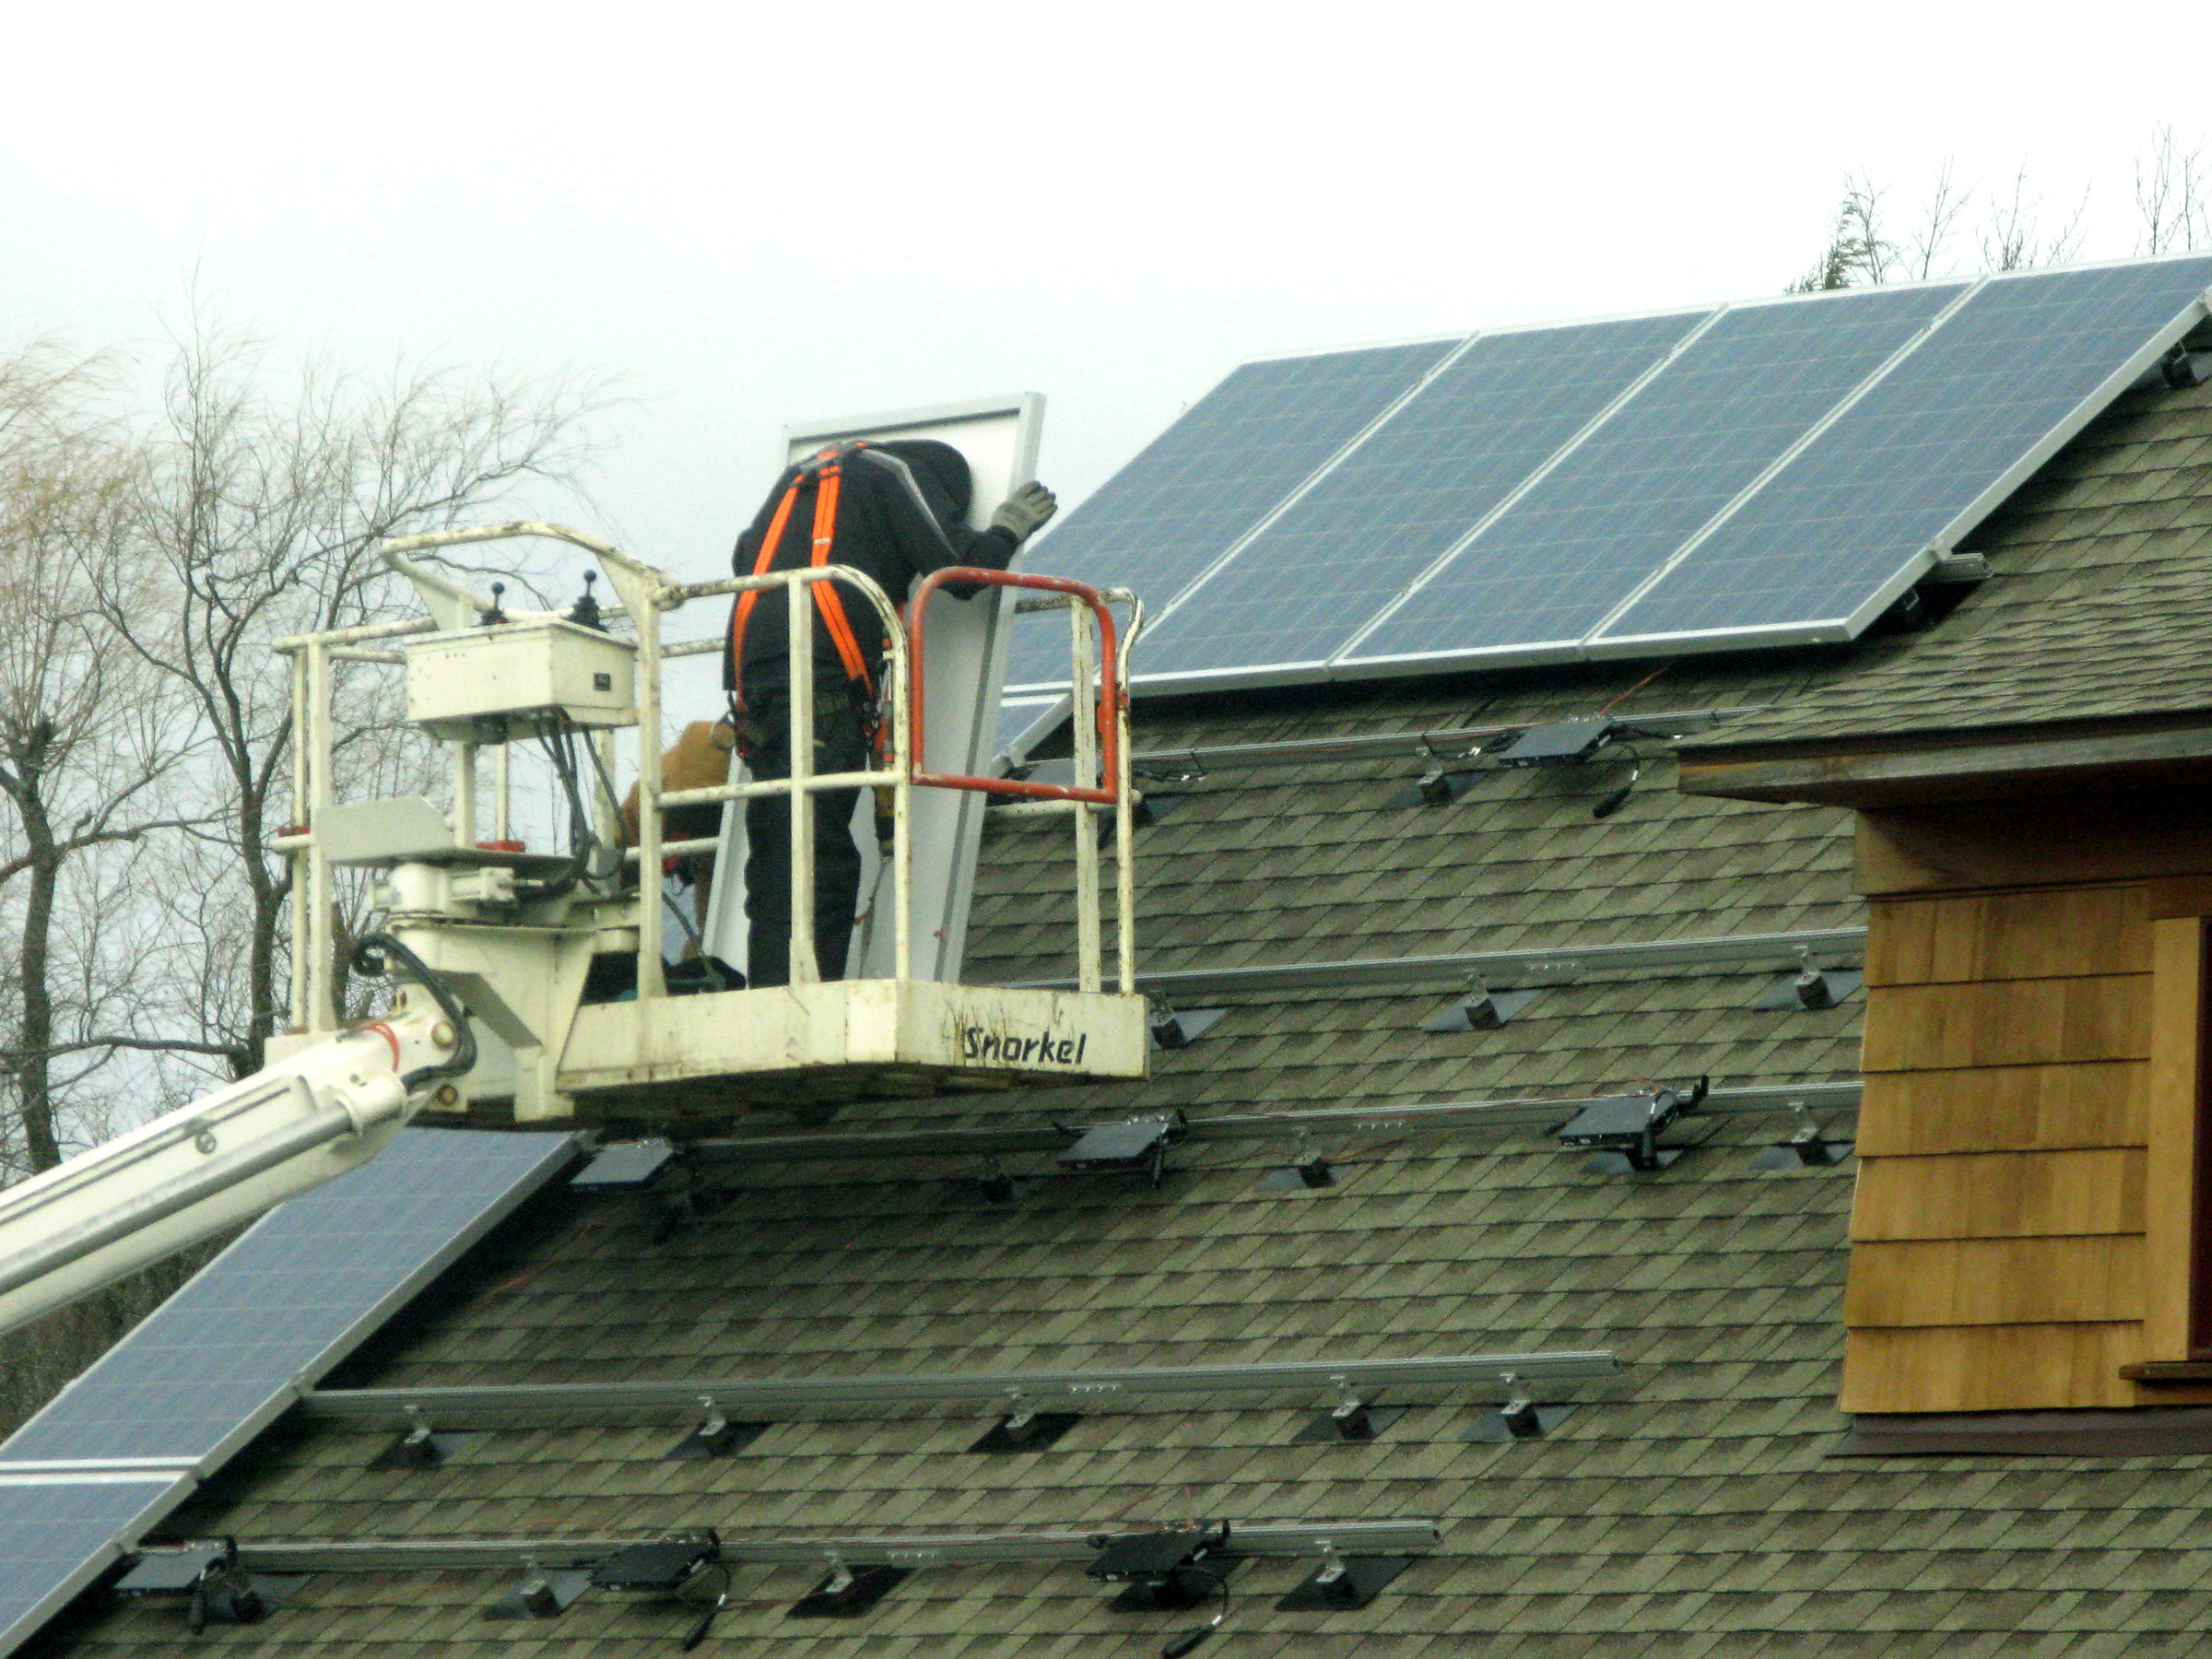 Net Metering Energy Providers Clash On Cap Utility Rates New Wiring In Solar Cells Might Stop Reflecting Light One Up